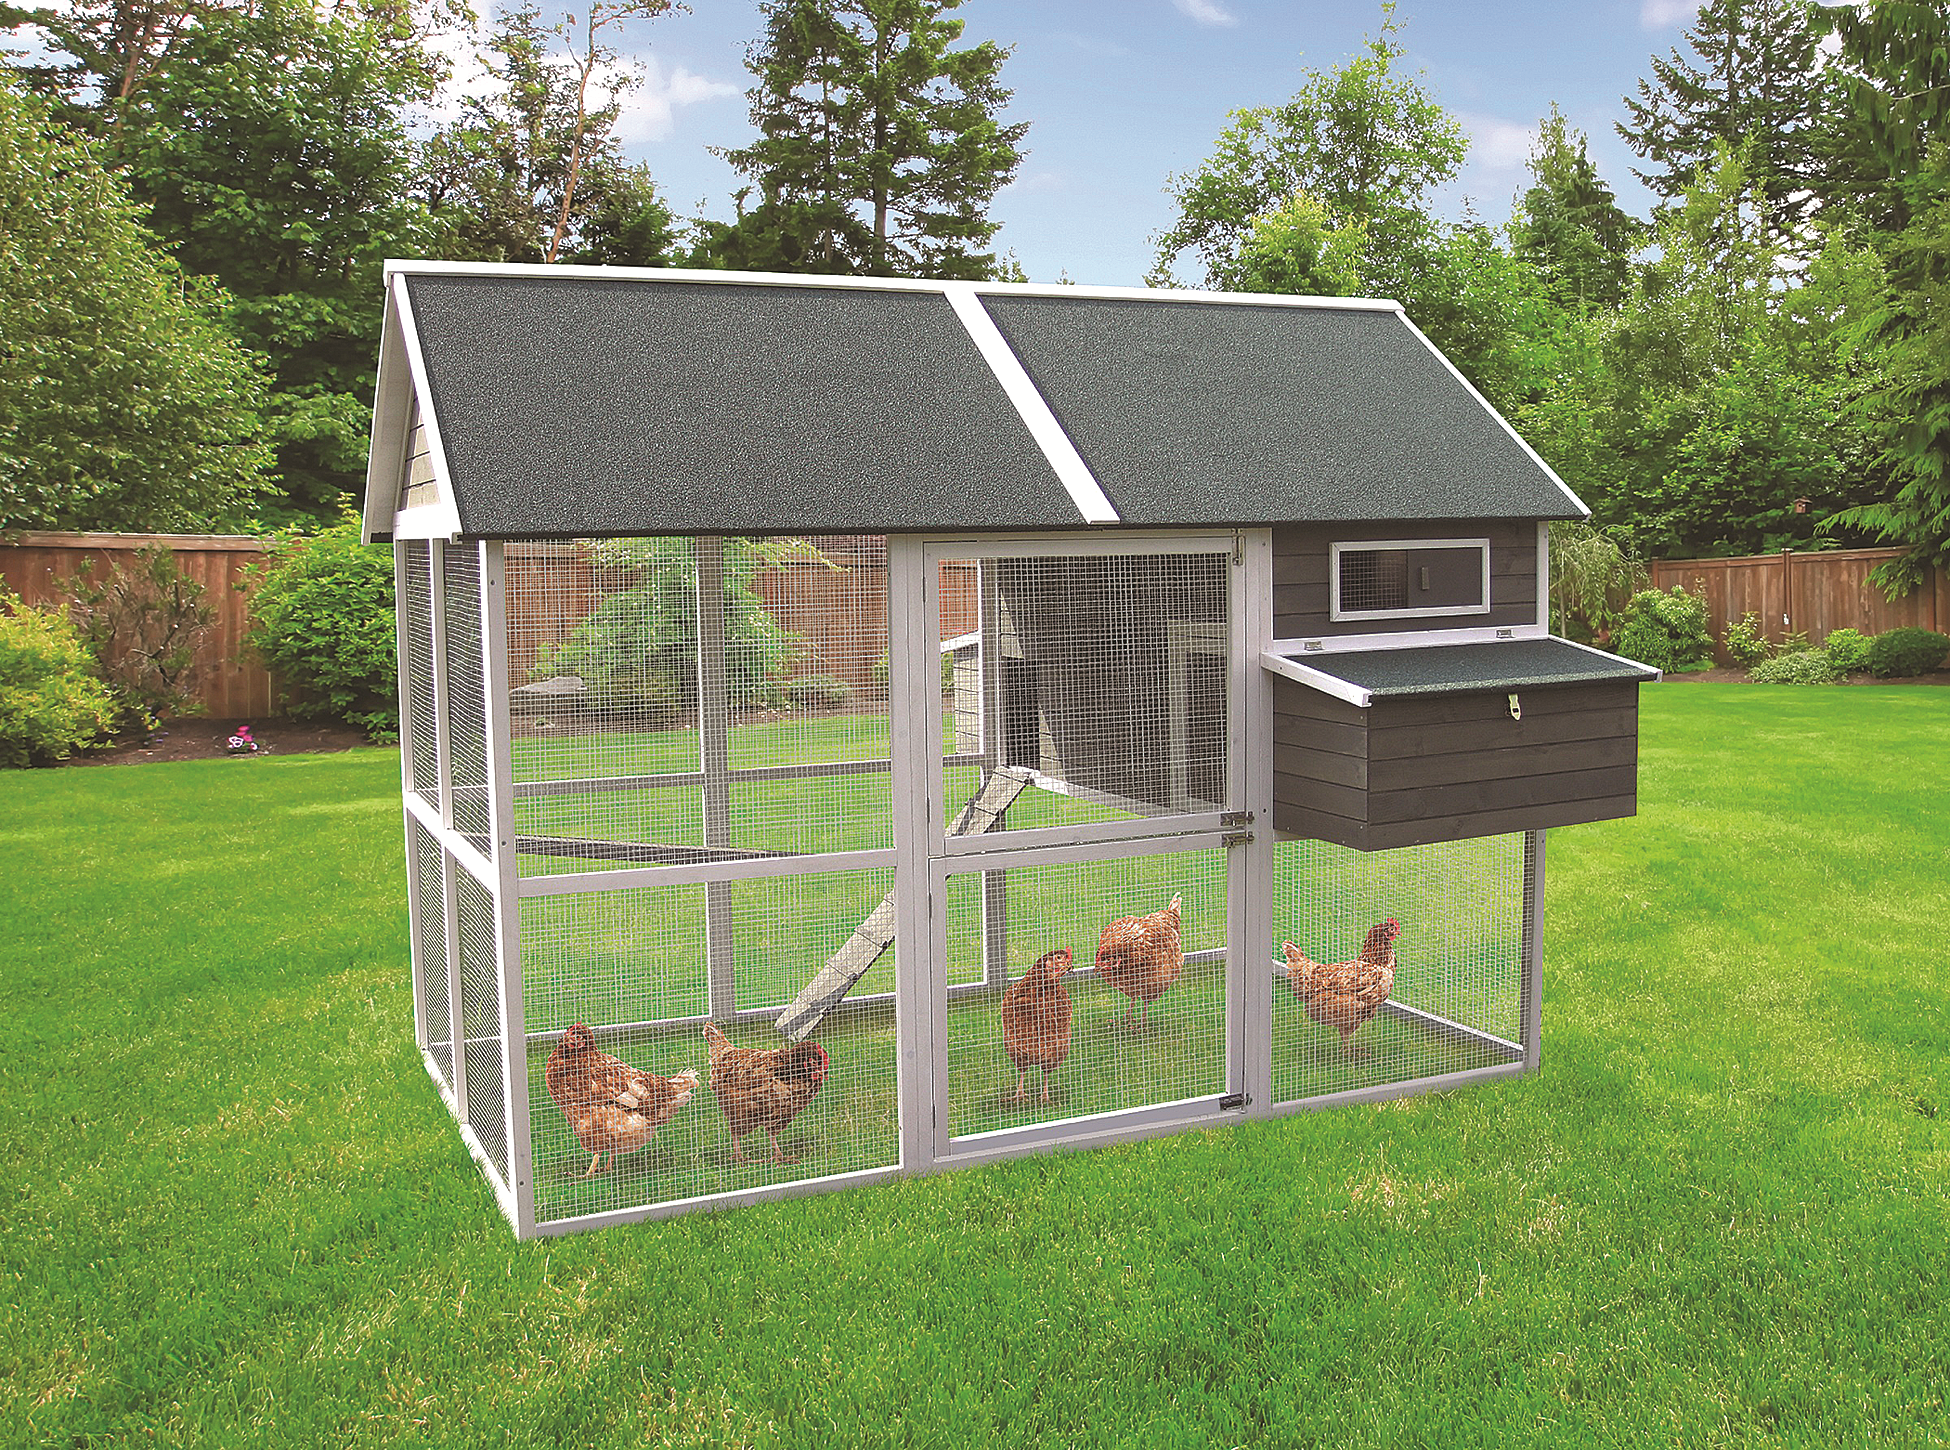 Innovation Pet Extra Large Green Walk In Coop Up To 15 Chickens Pet Chickens Coops Chickens Backyard Walk In Chicken Coop